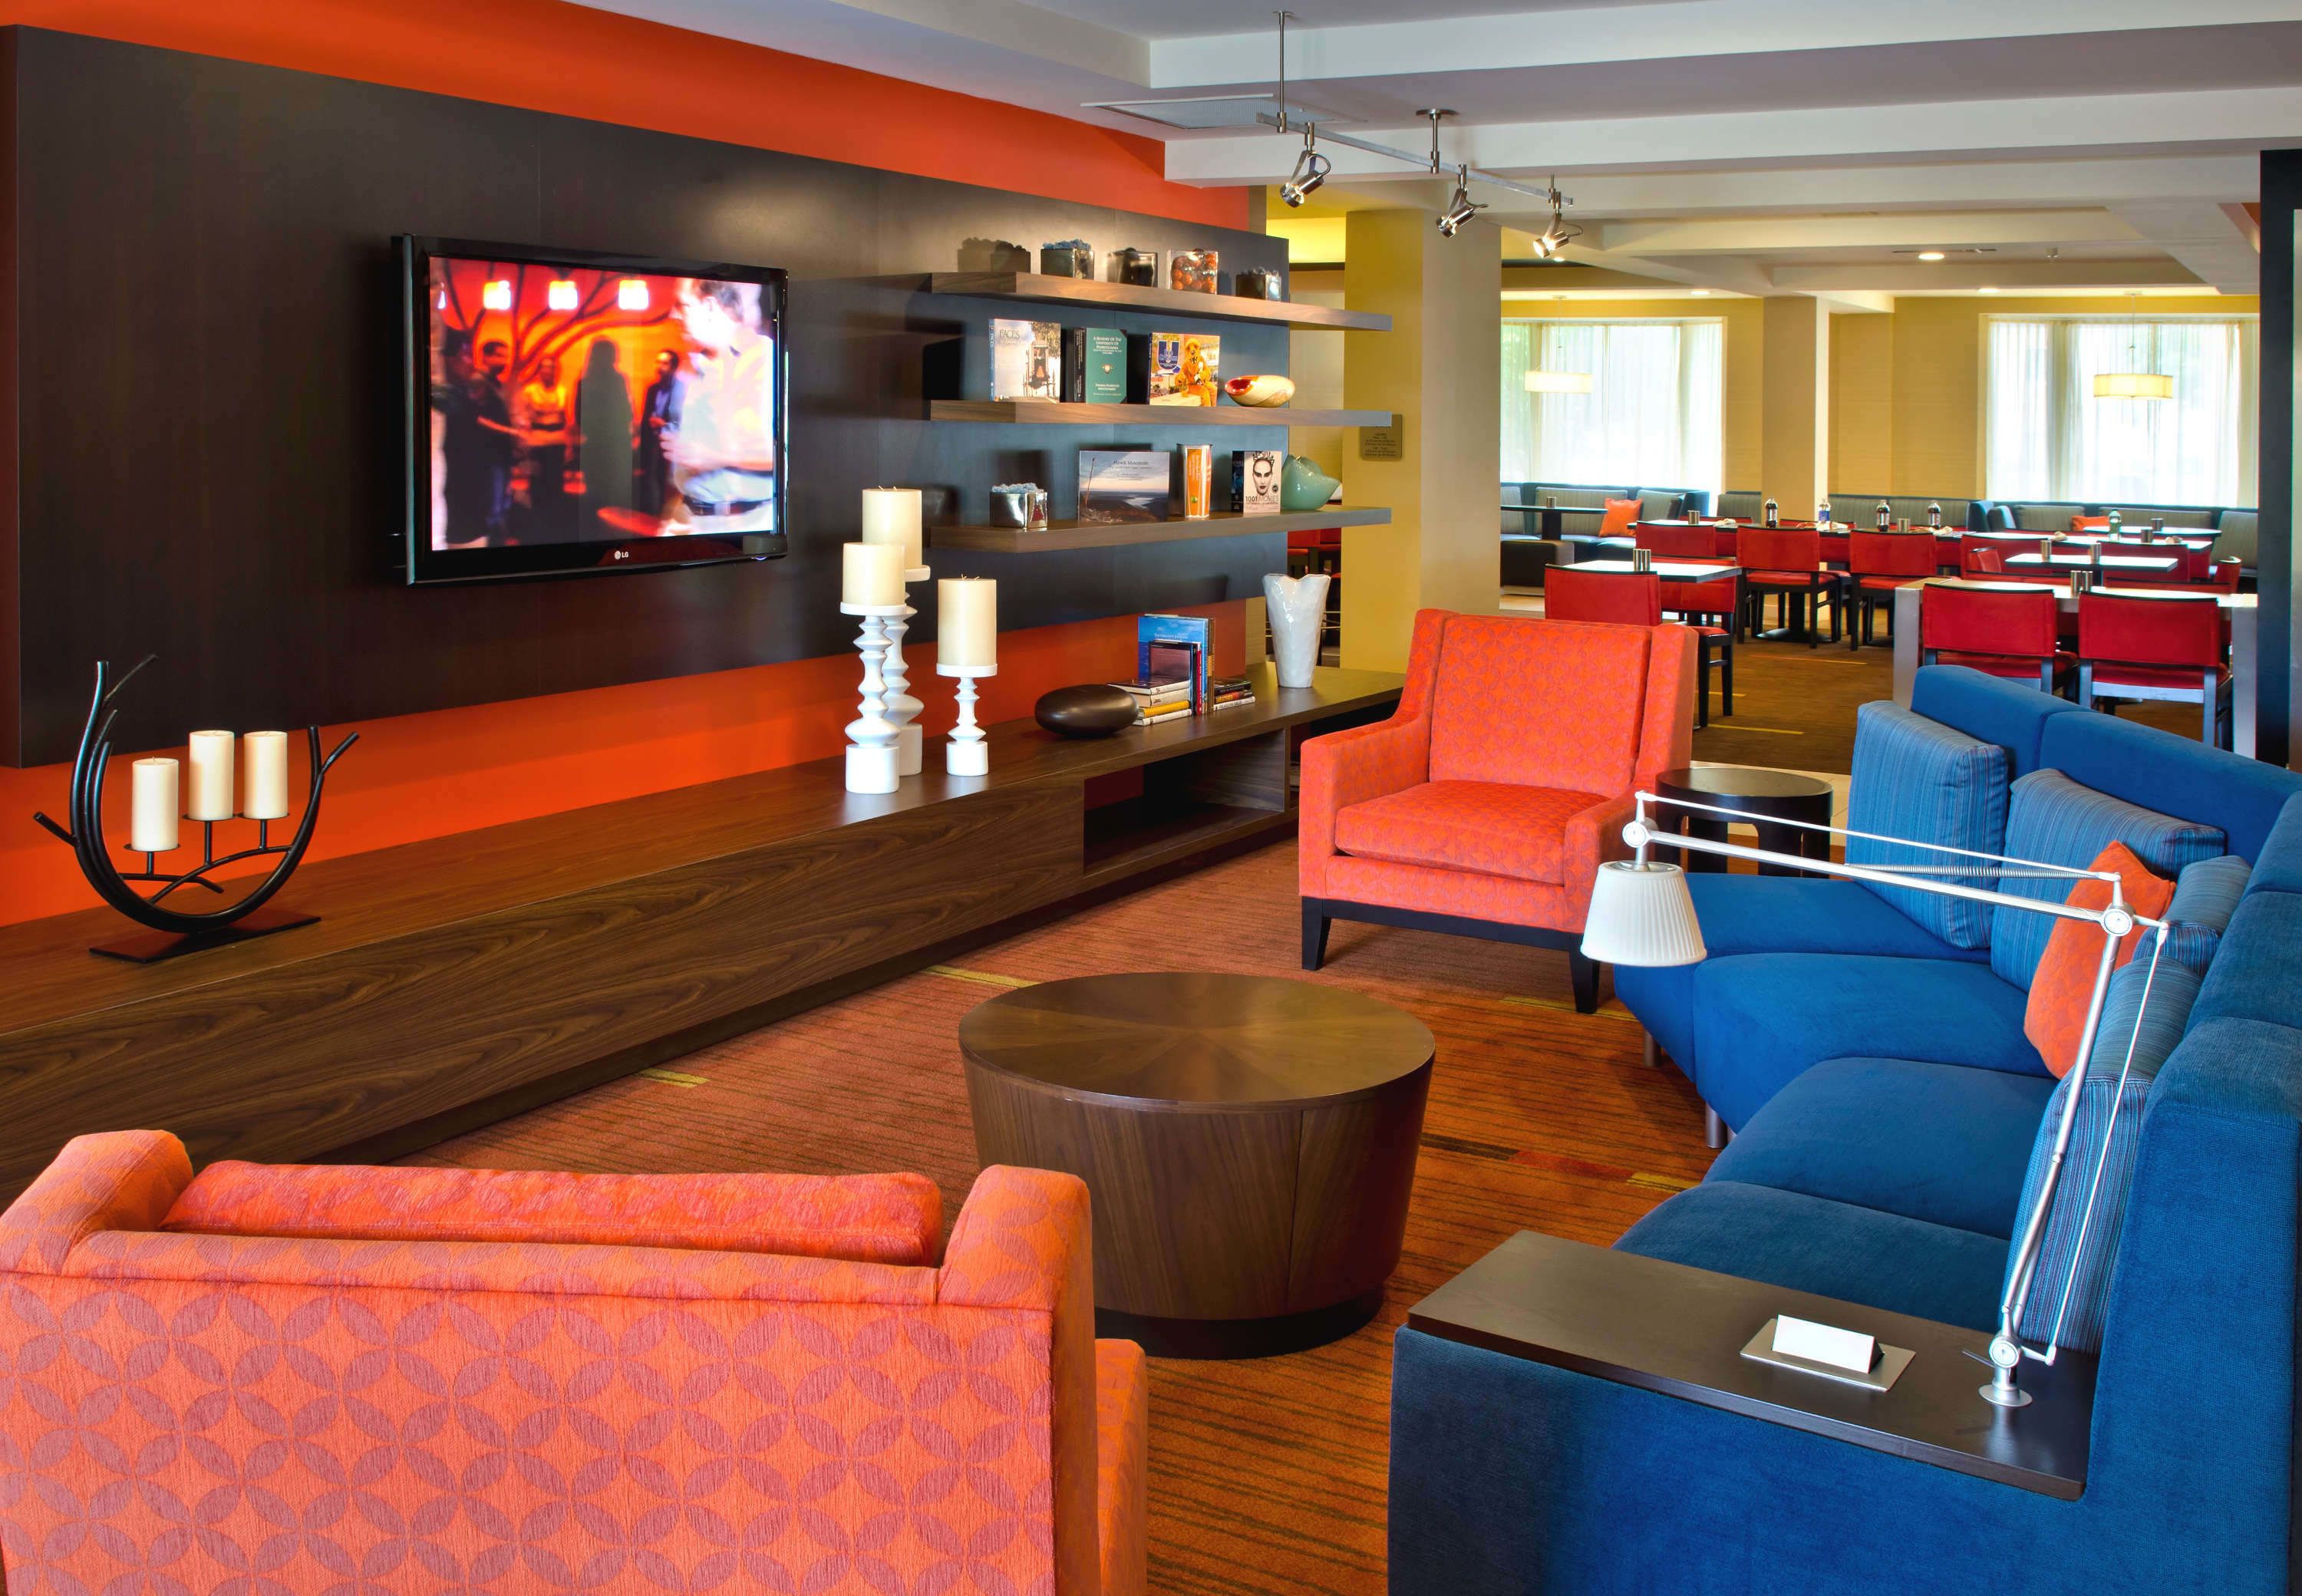 Courtyard by Marriott Allentown Bethlehem/Lehigh Valley Airport image 10